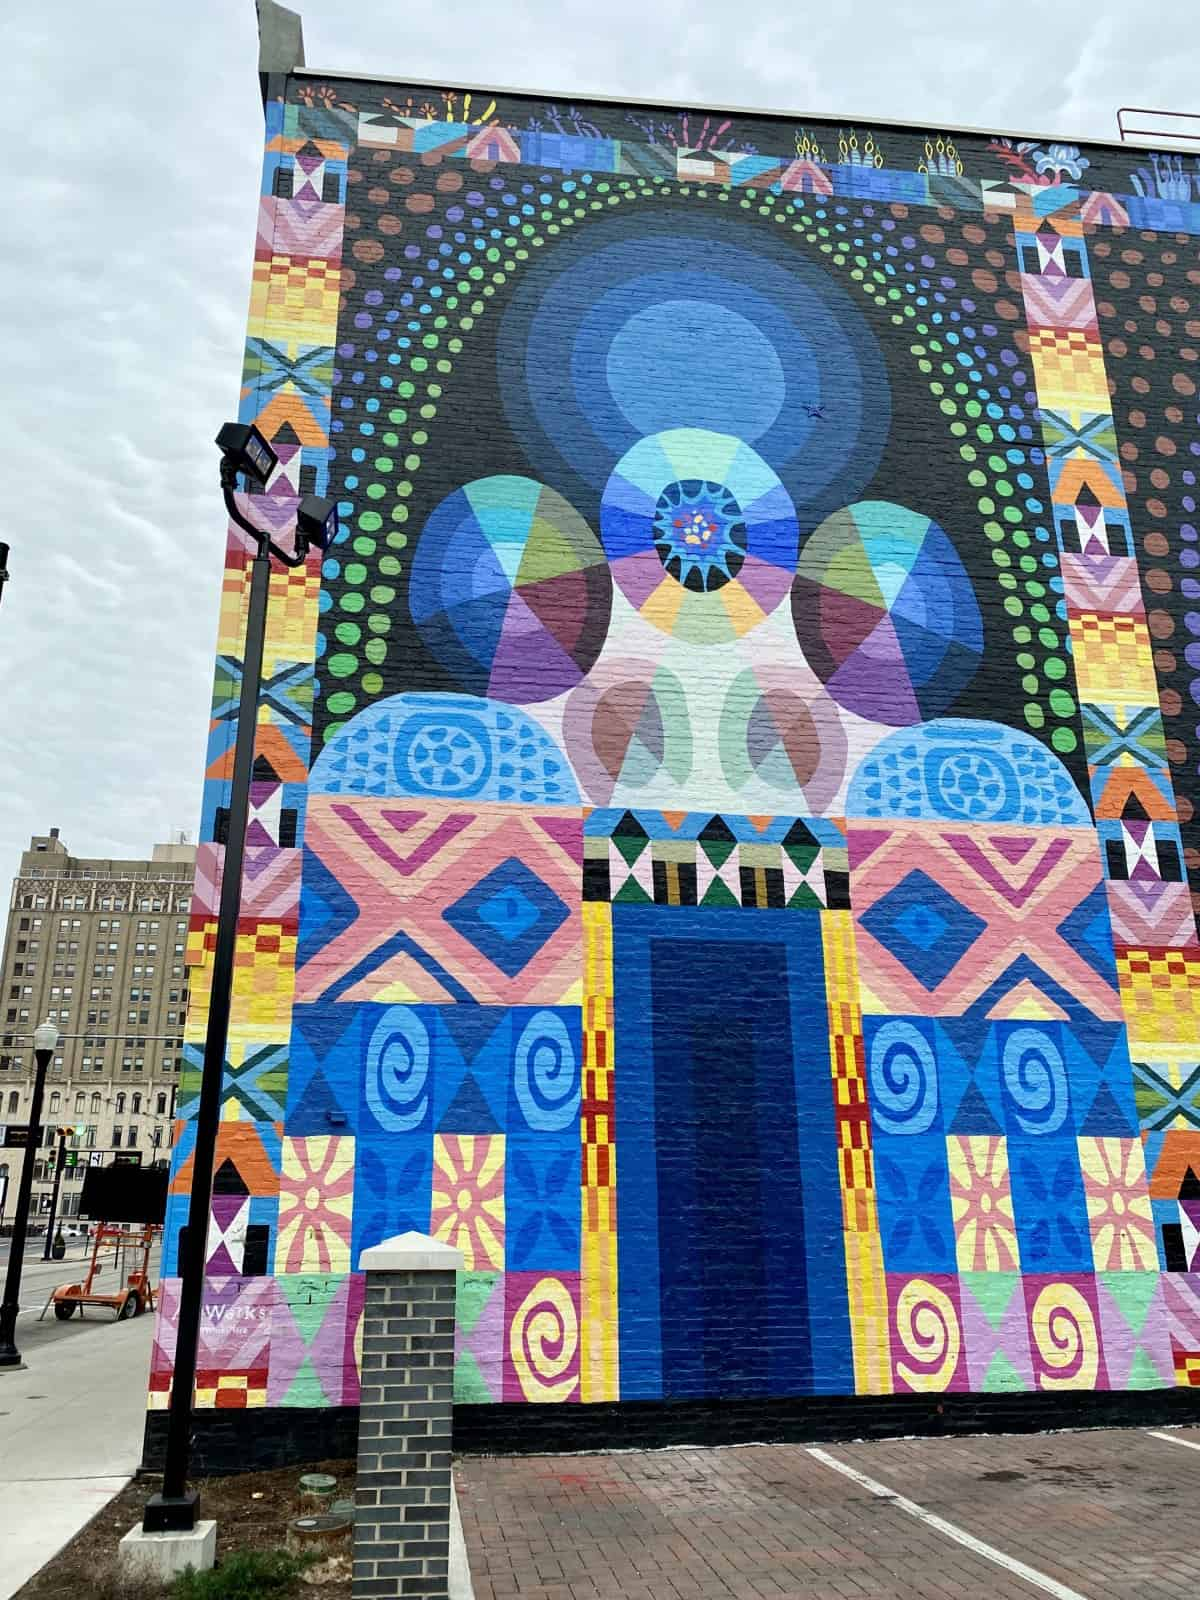 Exploring the Street Art & Murals in Cincinnati | You'll be blown away by Cincinnati's vibrant murals, scattered all over the city in all different styles. How to discover Cincinnati's street art, which murals are must-see, what to do in Cincinnati, itinerary ideas. #streetart #murals #cincinnati #ohio